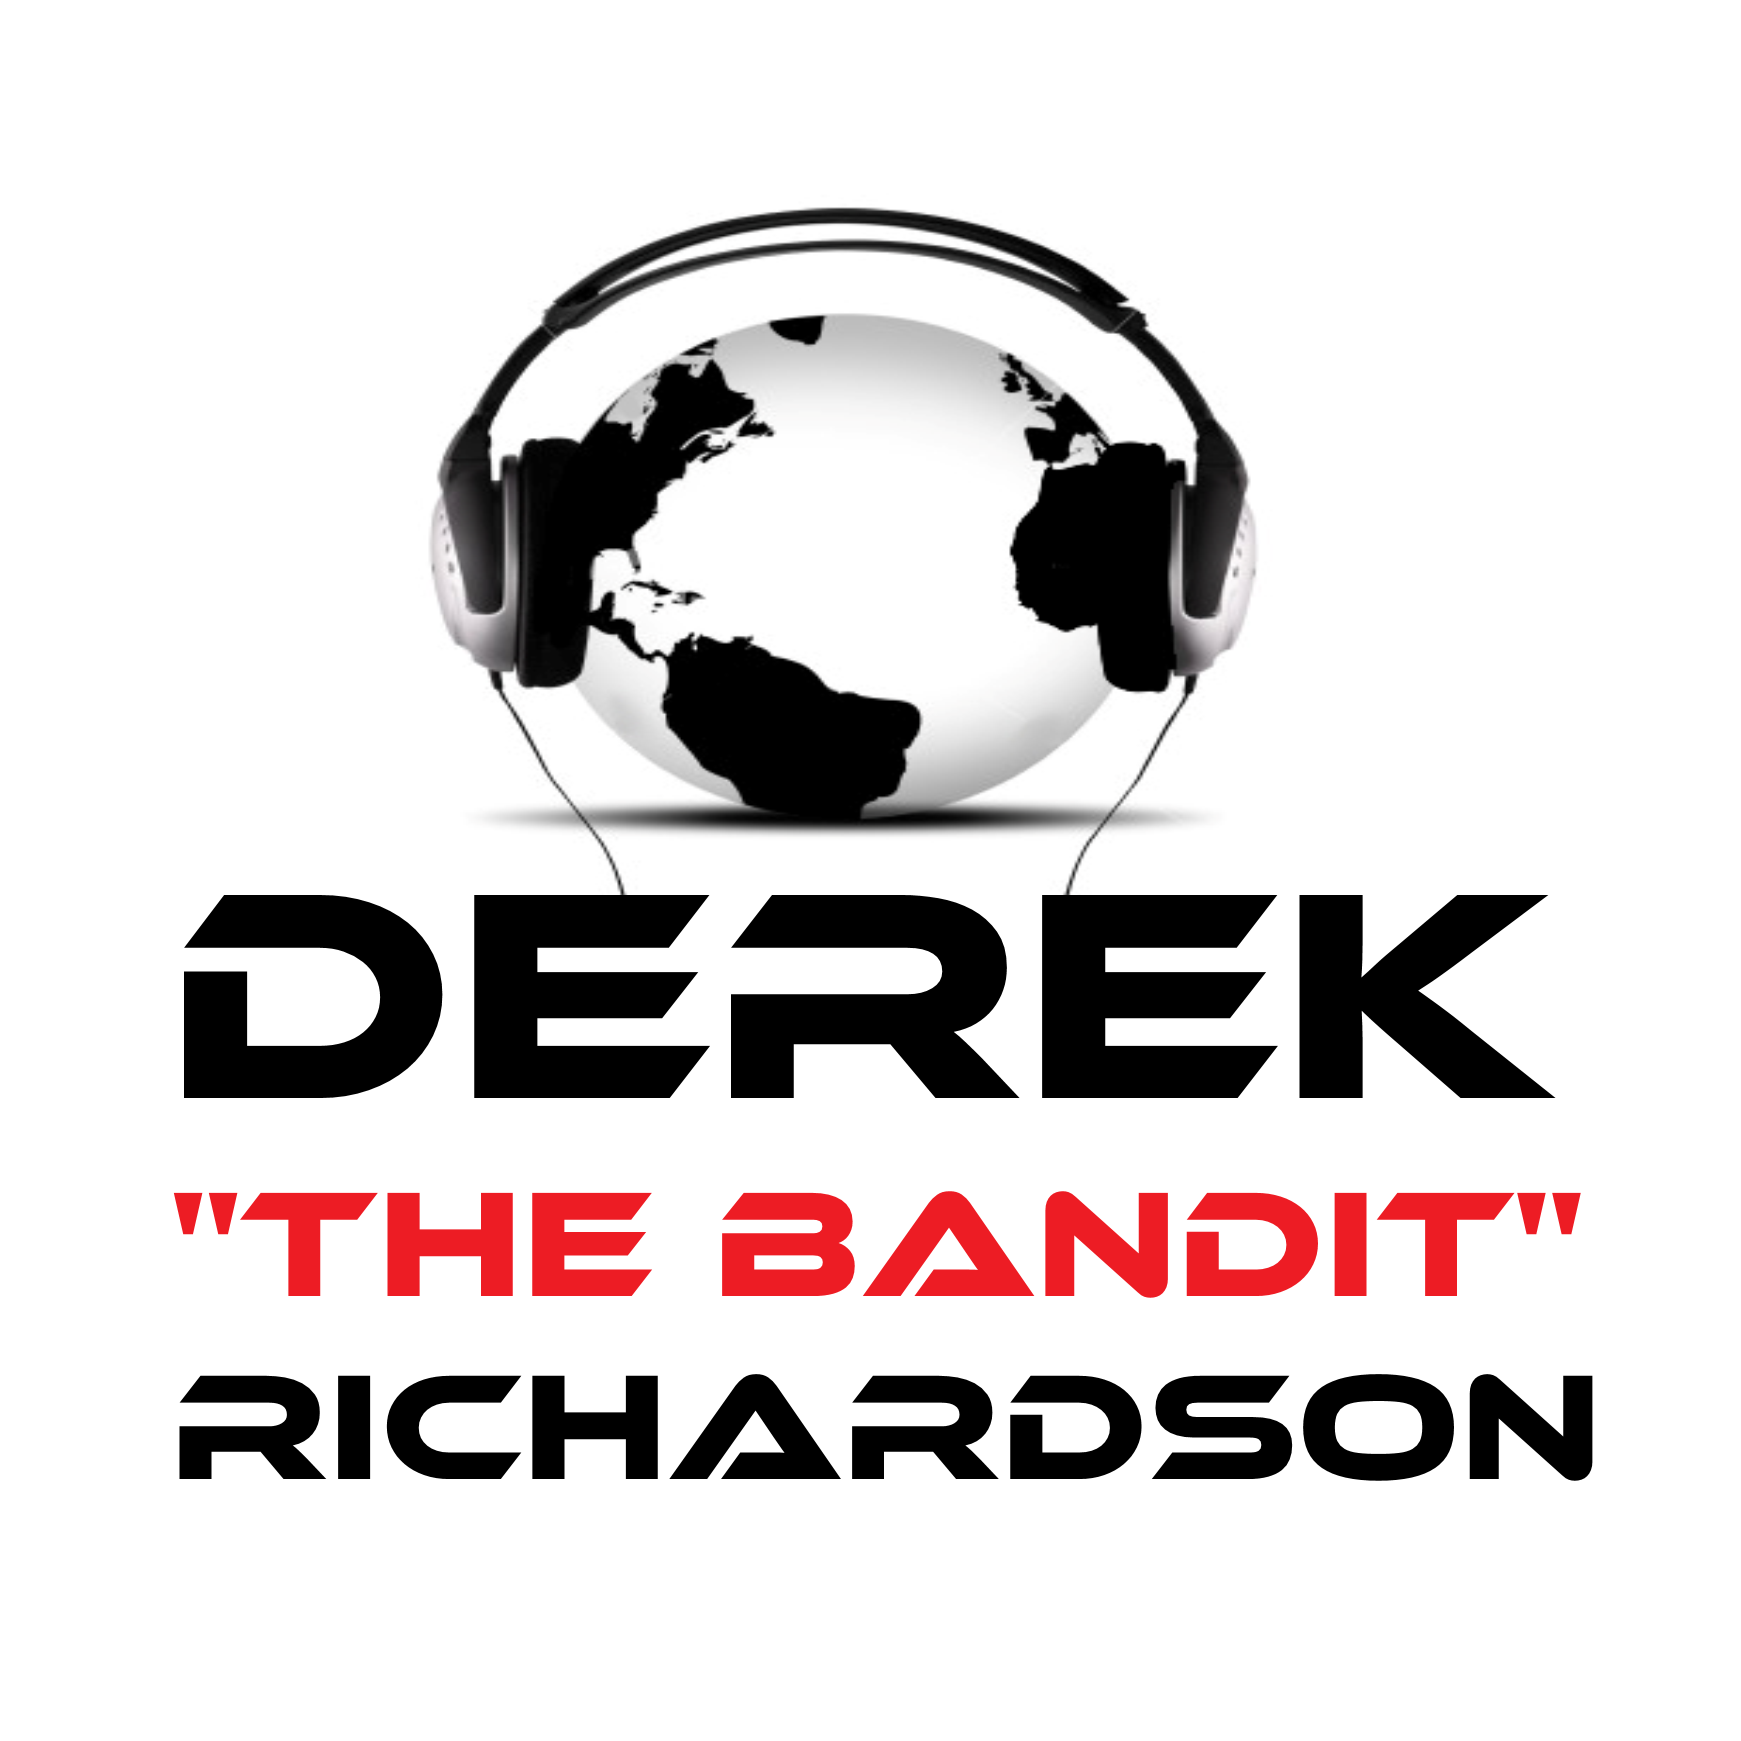 Derek Richardson - My Digital Domain